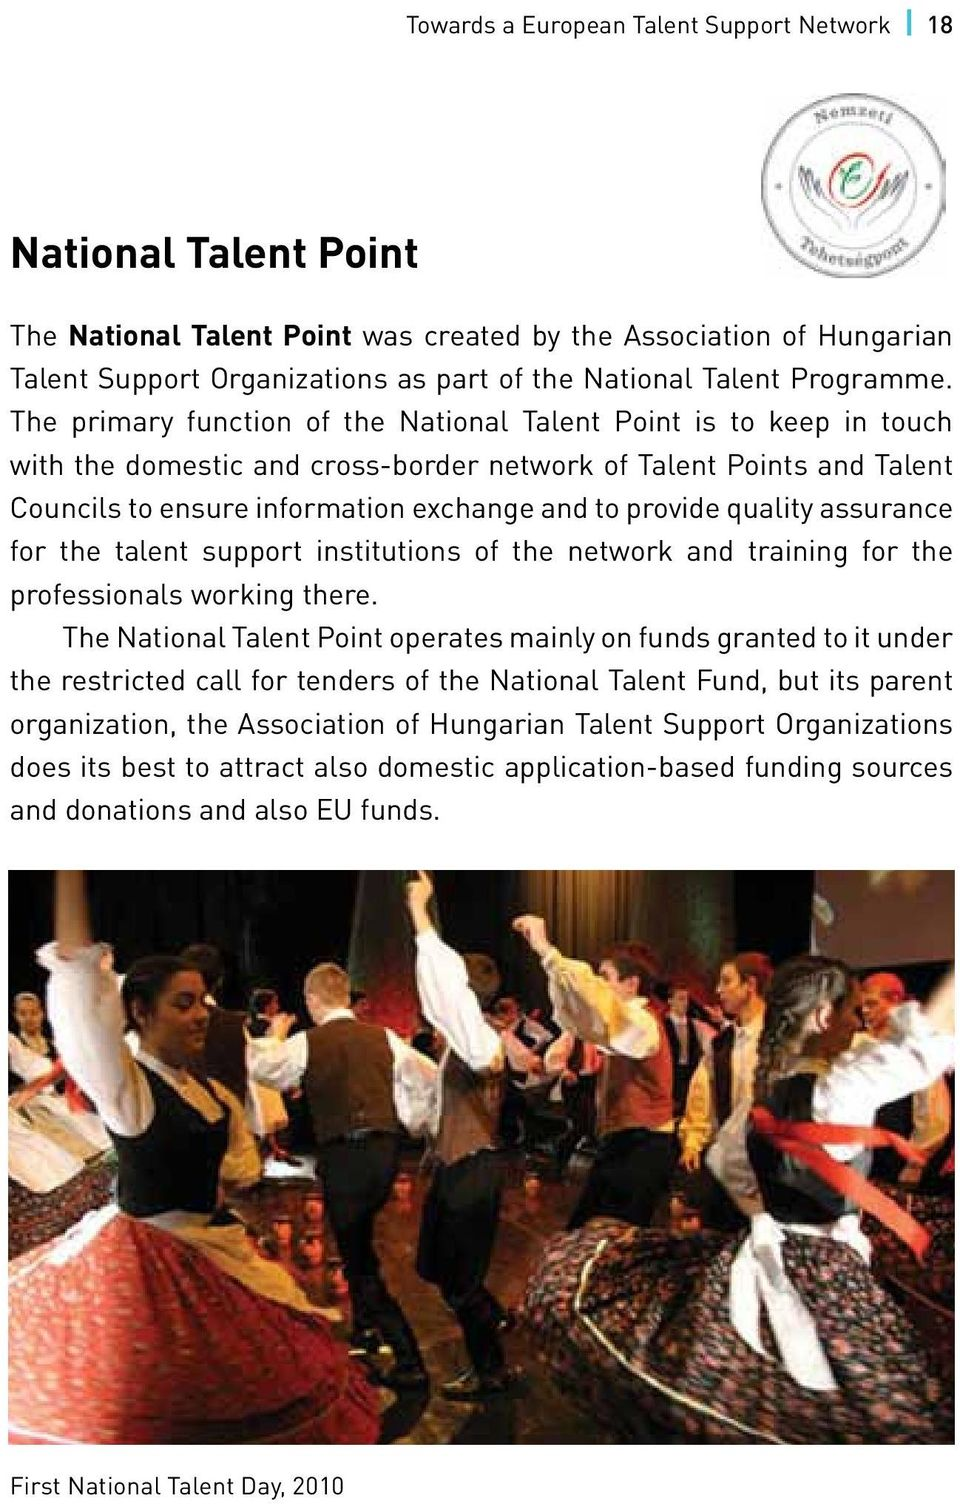 The primary function of the National Talent Point is to keep in touch with the domestic and cross-border network of Talent Points and Talent Councils to ensure information exchange and to provide